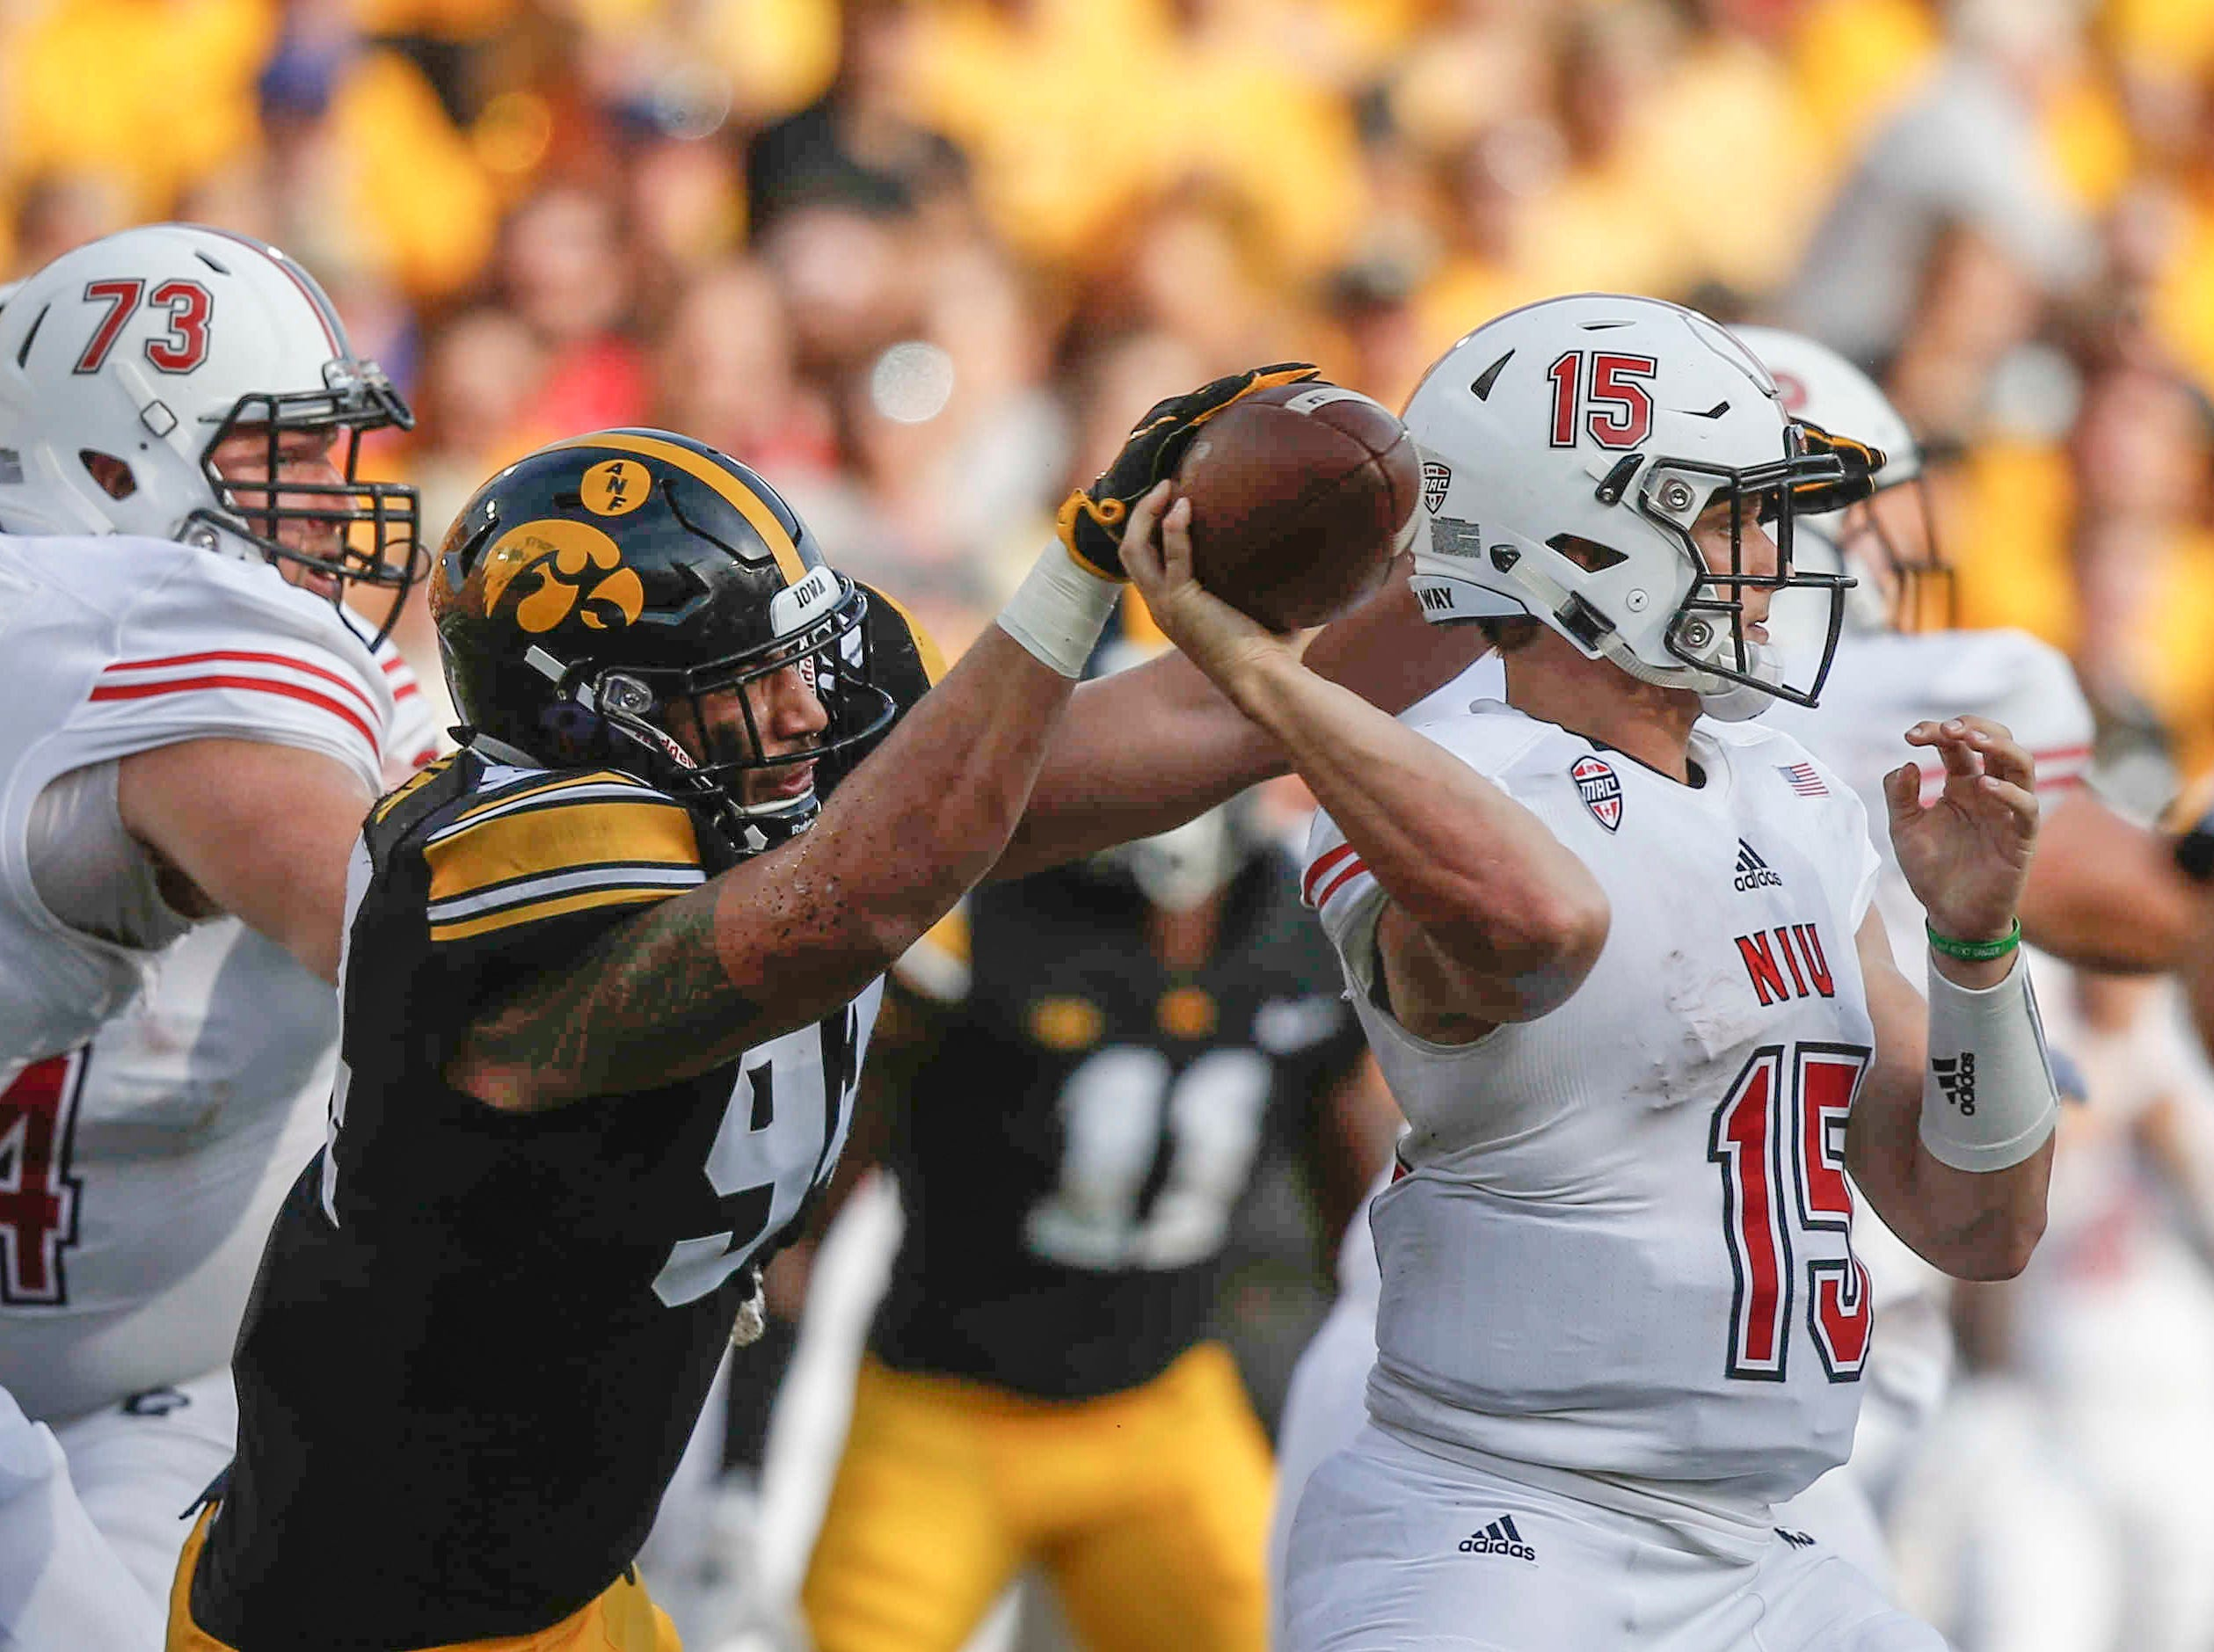 Iowa defensive end A.J. Epenesa gets his hand on the ball as Northern Illinois quarterback Marcus Childers throws a pass on Saturday, Sept. 1, 2018, at Kinnick Stadium in Iowa City.